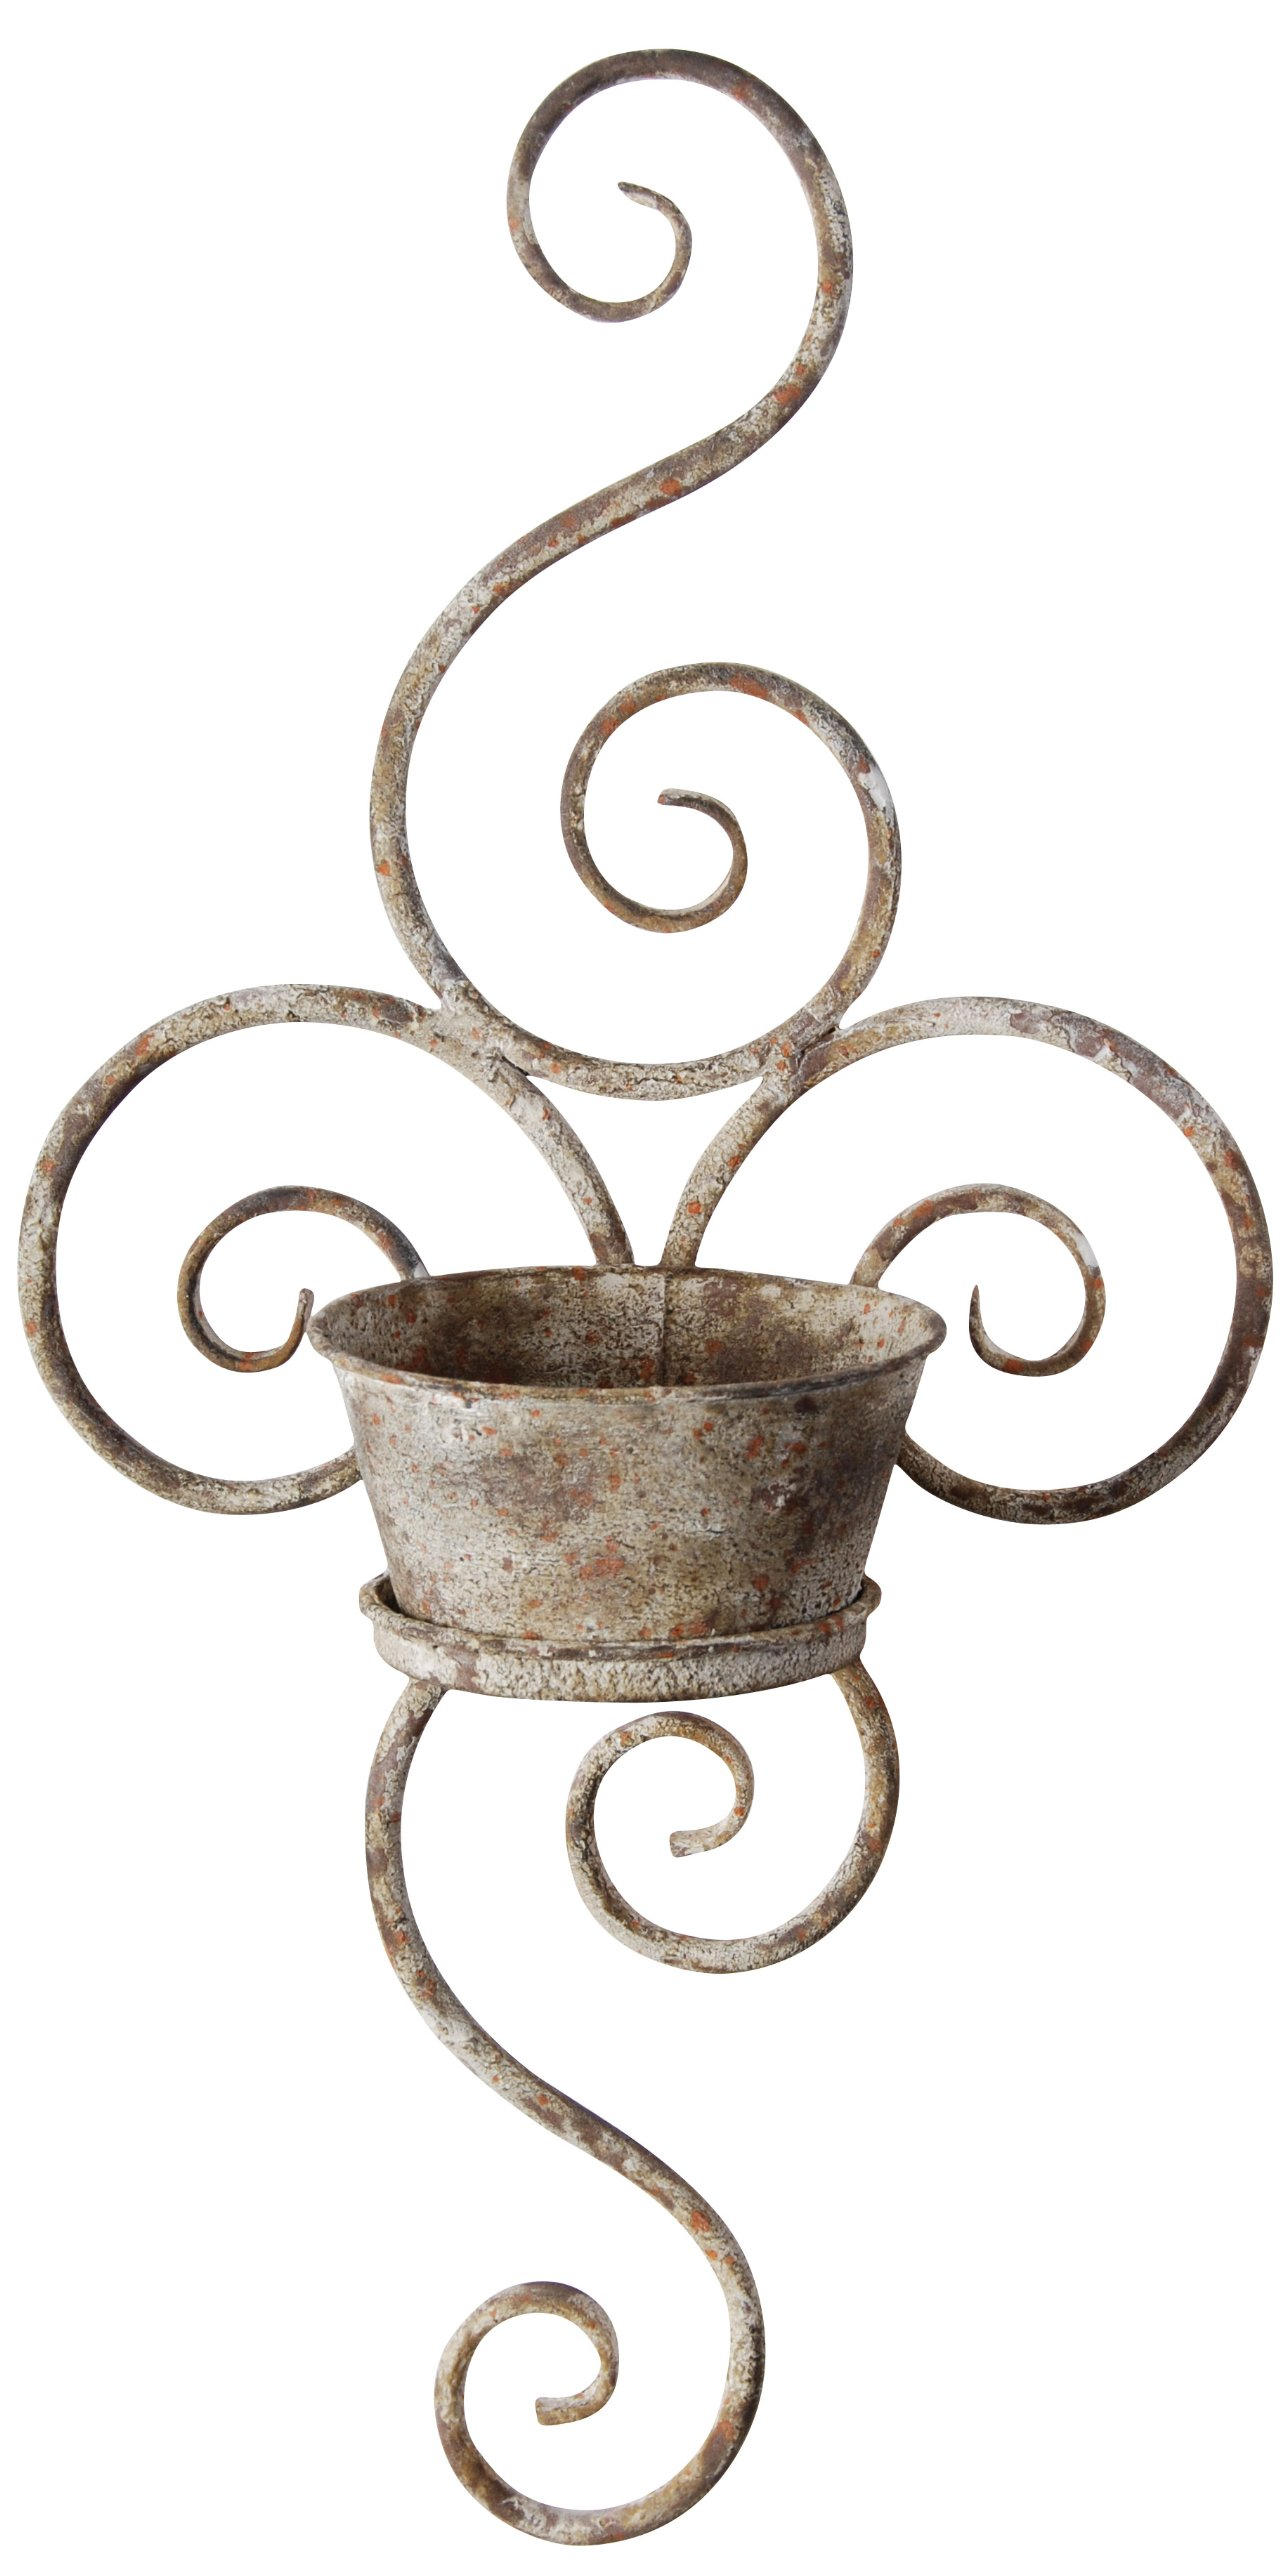 Outdoor Wall Art Metal Scroll : New scroll design metal wall planter decorative rustic